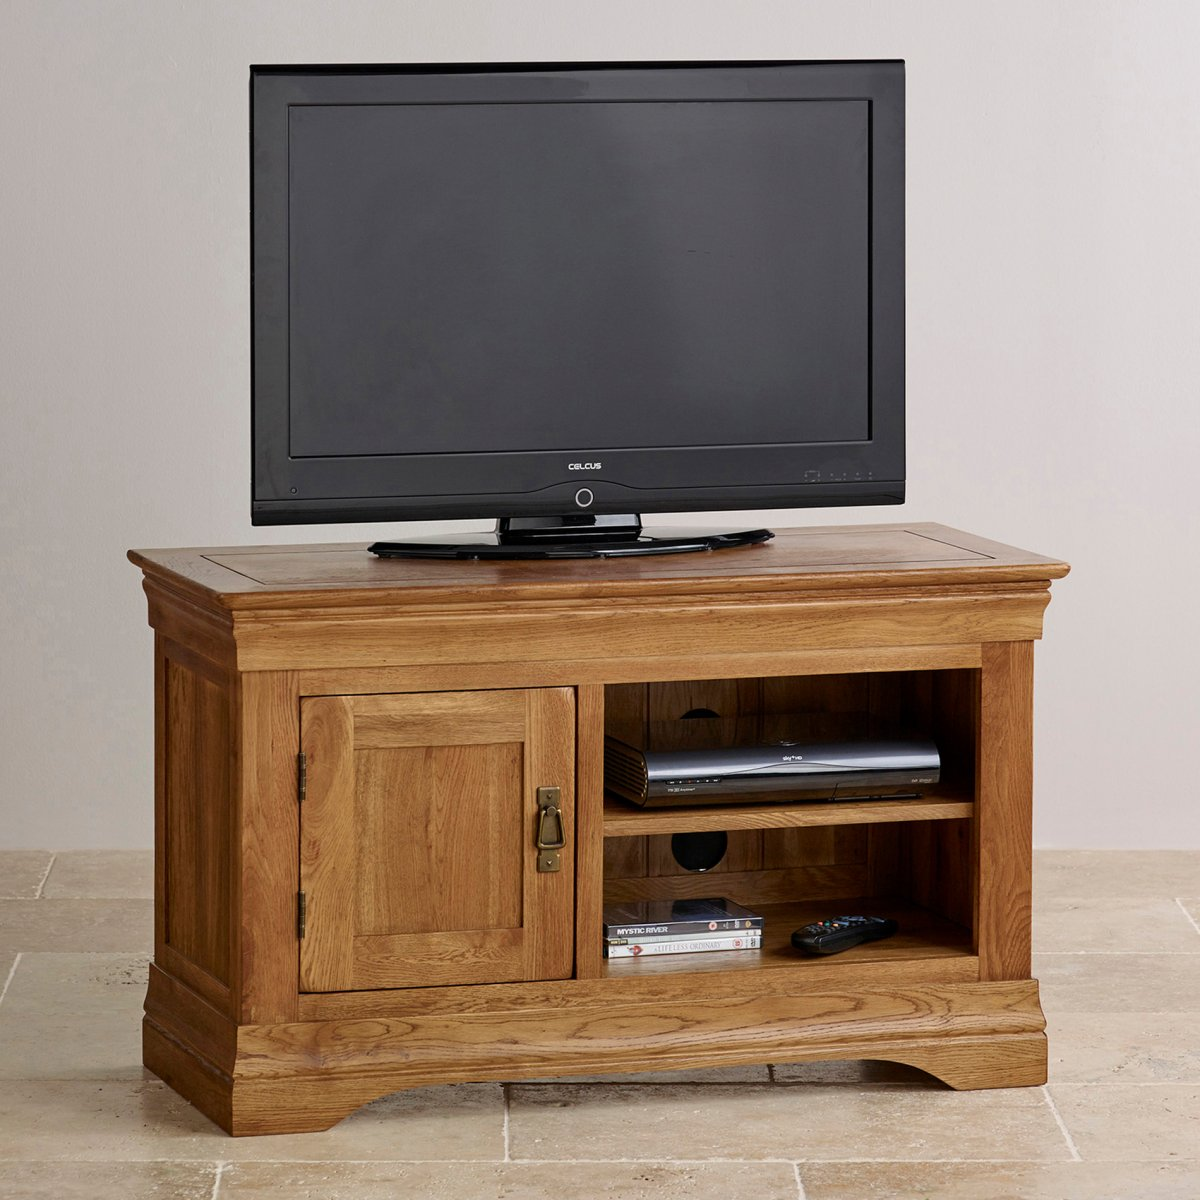 french farmhouse tv cabinet solid oak oak furniture land. Black Bedroom Furniture Sets. Home Design Ideas